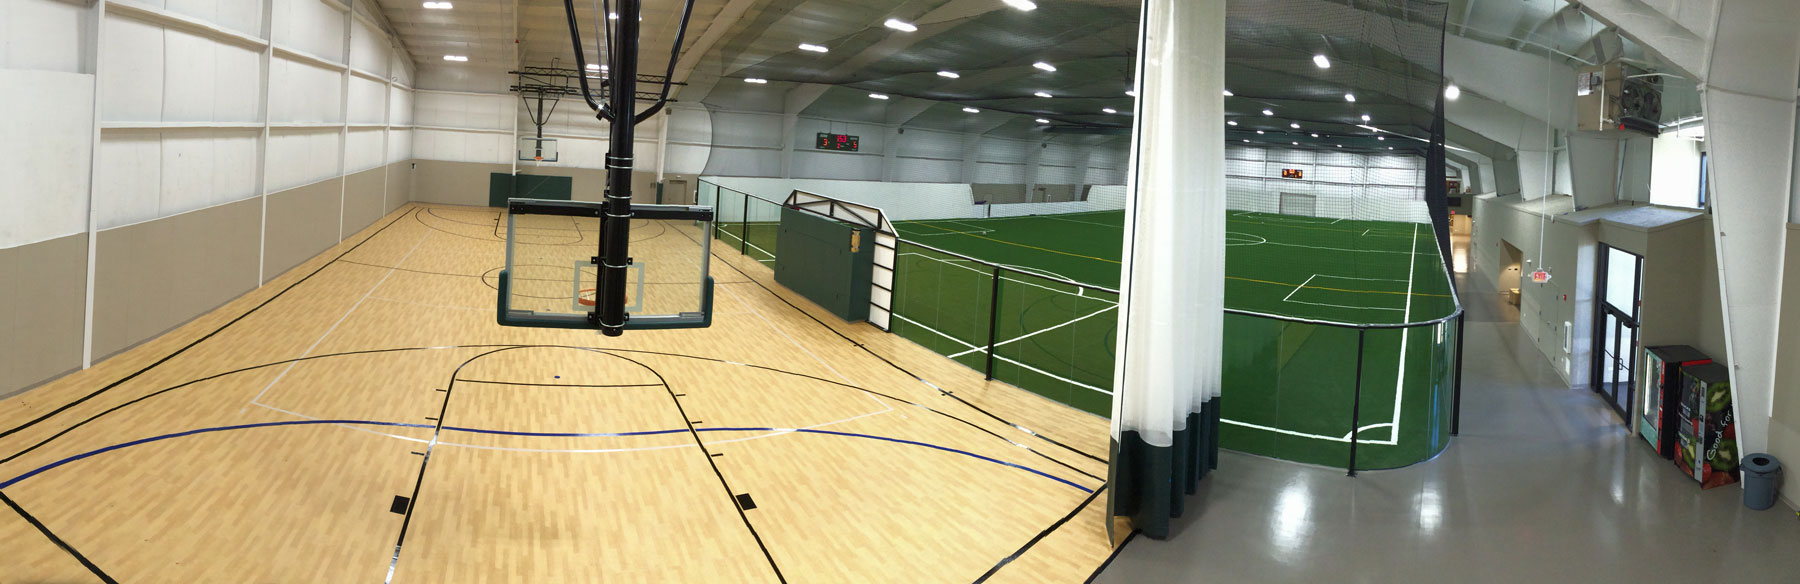 Wheatland Athletic Association Sports Center